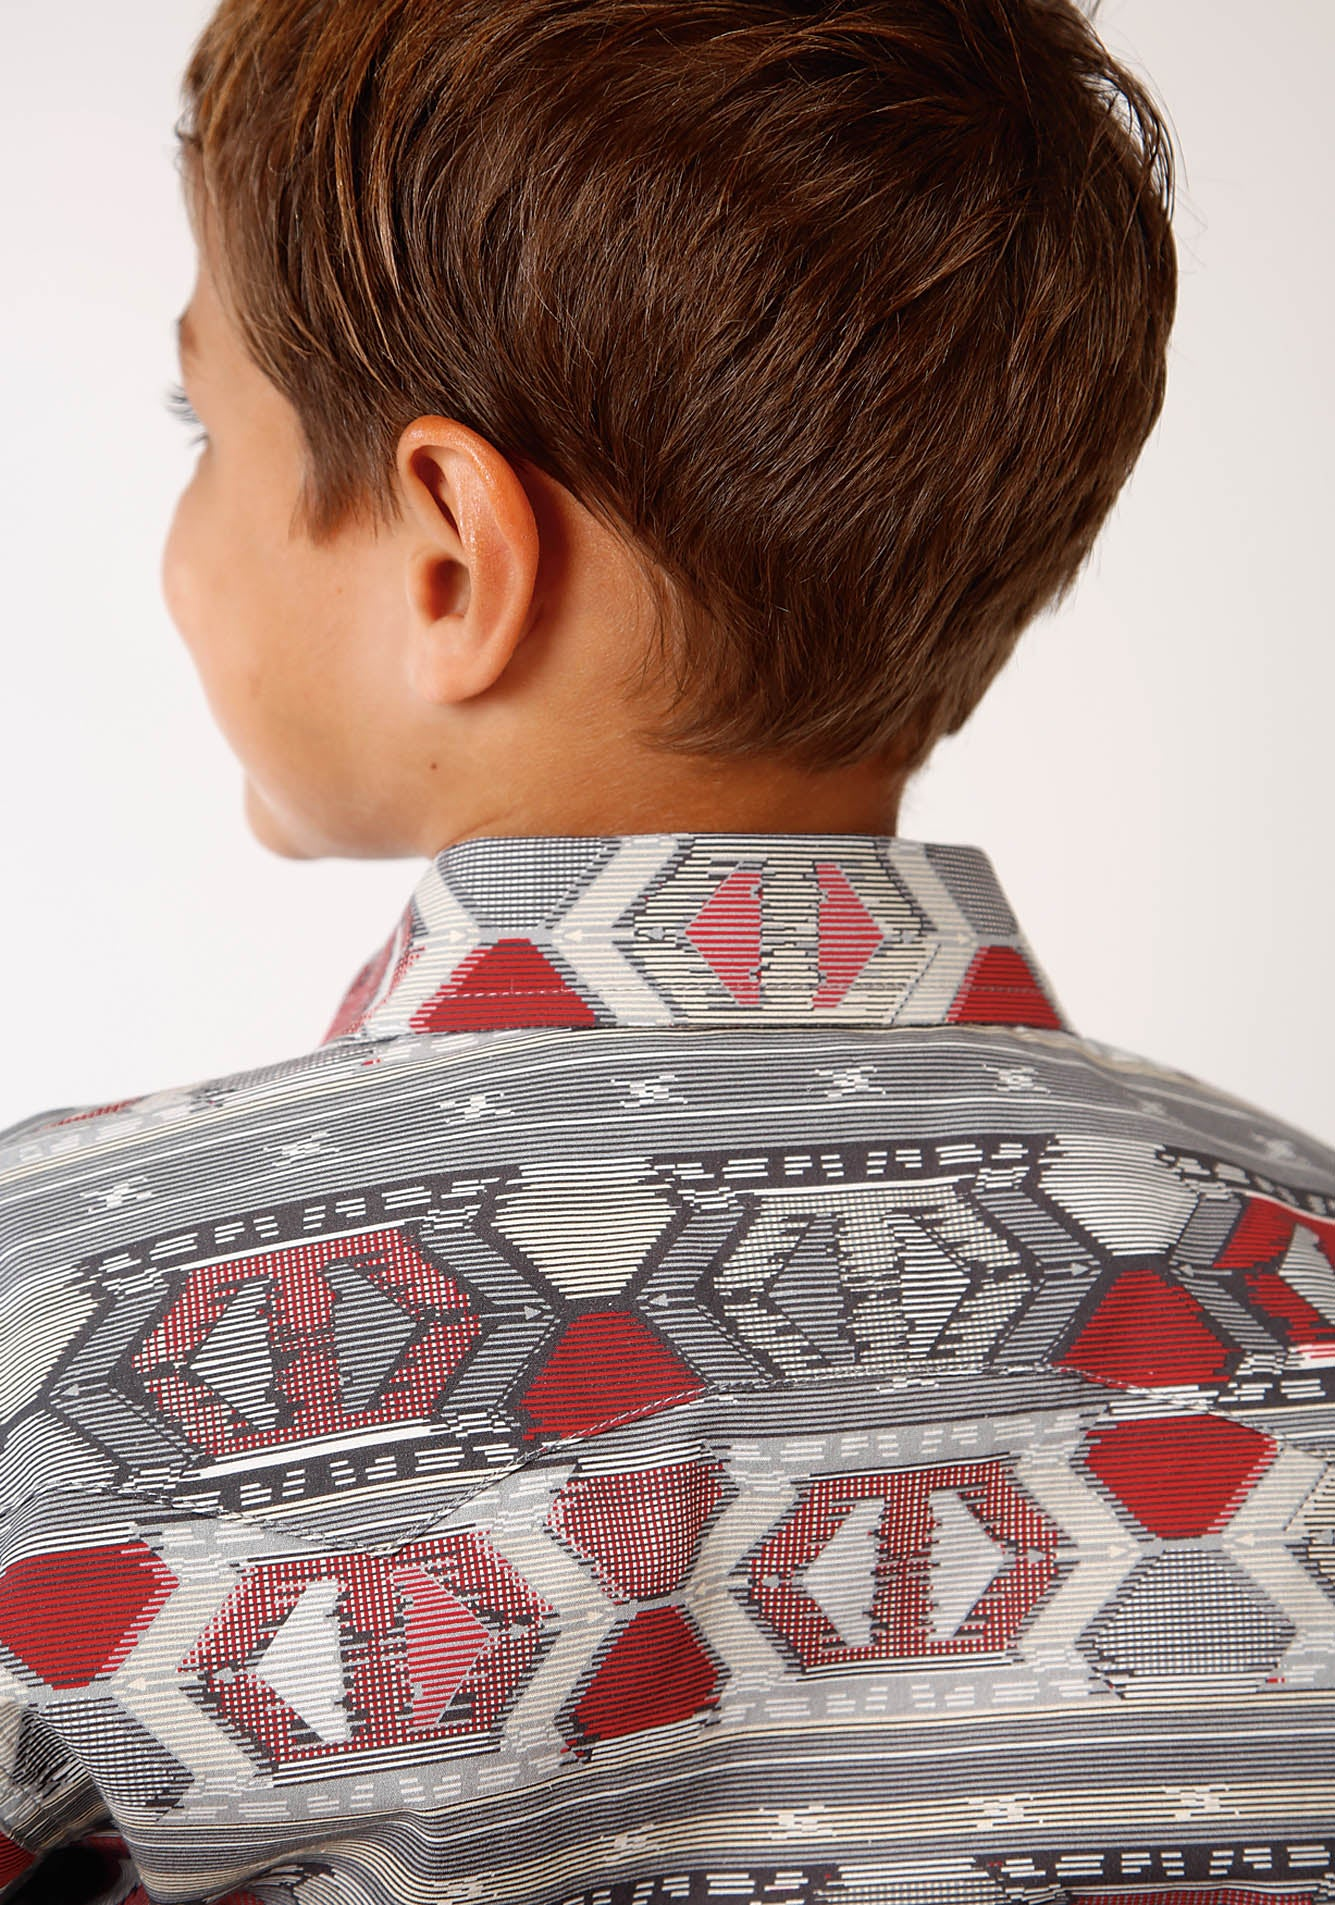 ROPER BOYS RED 00179 AZTEC WEAVING PRINT WEST MADE COLLECTION LONG SLEEVE